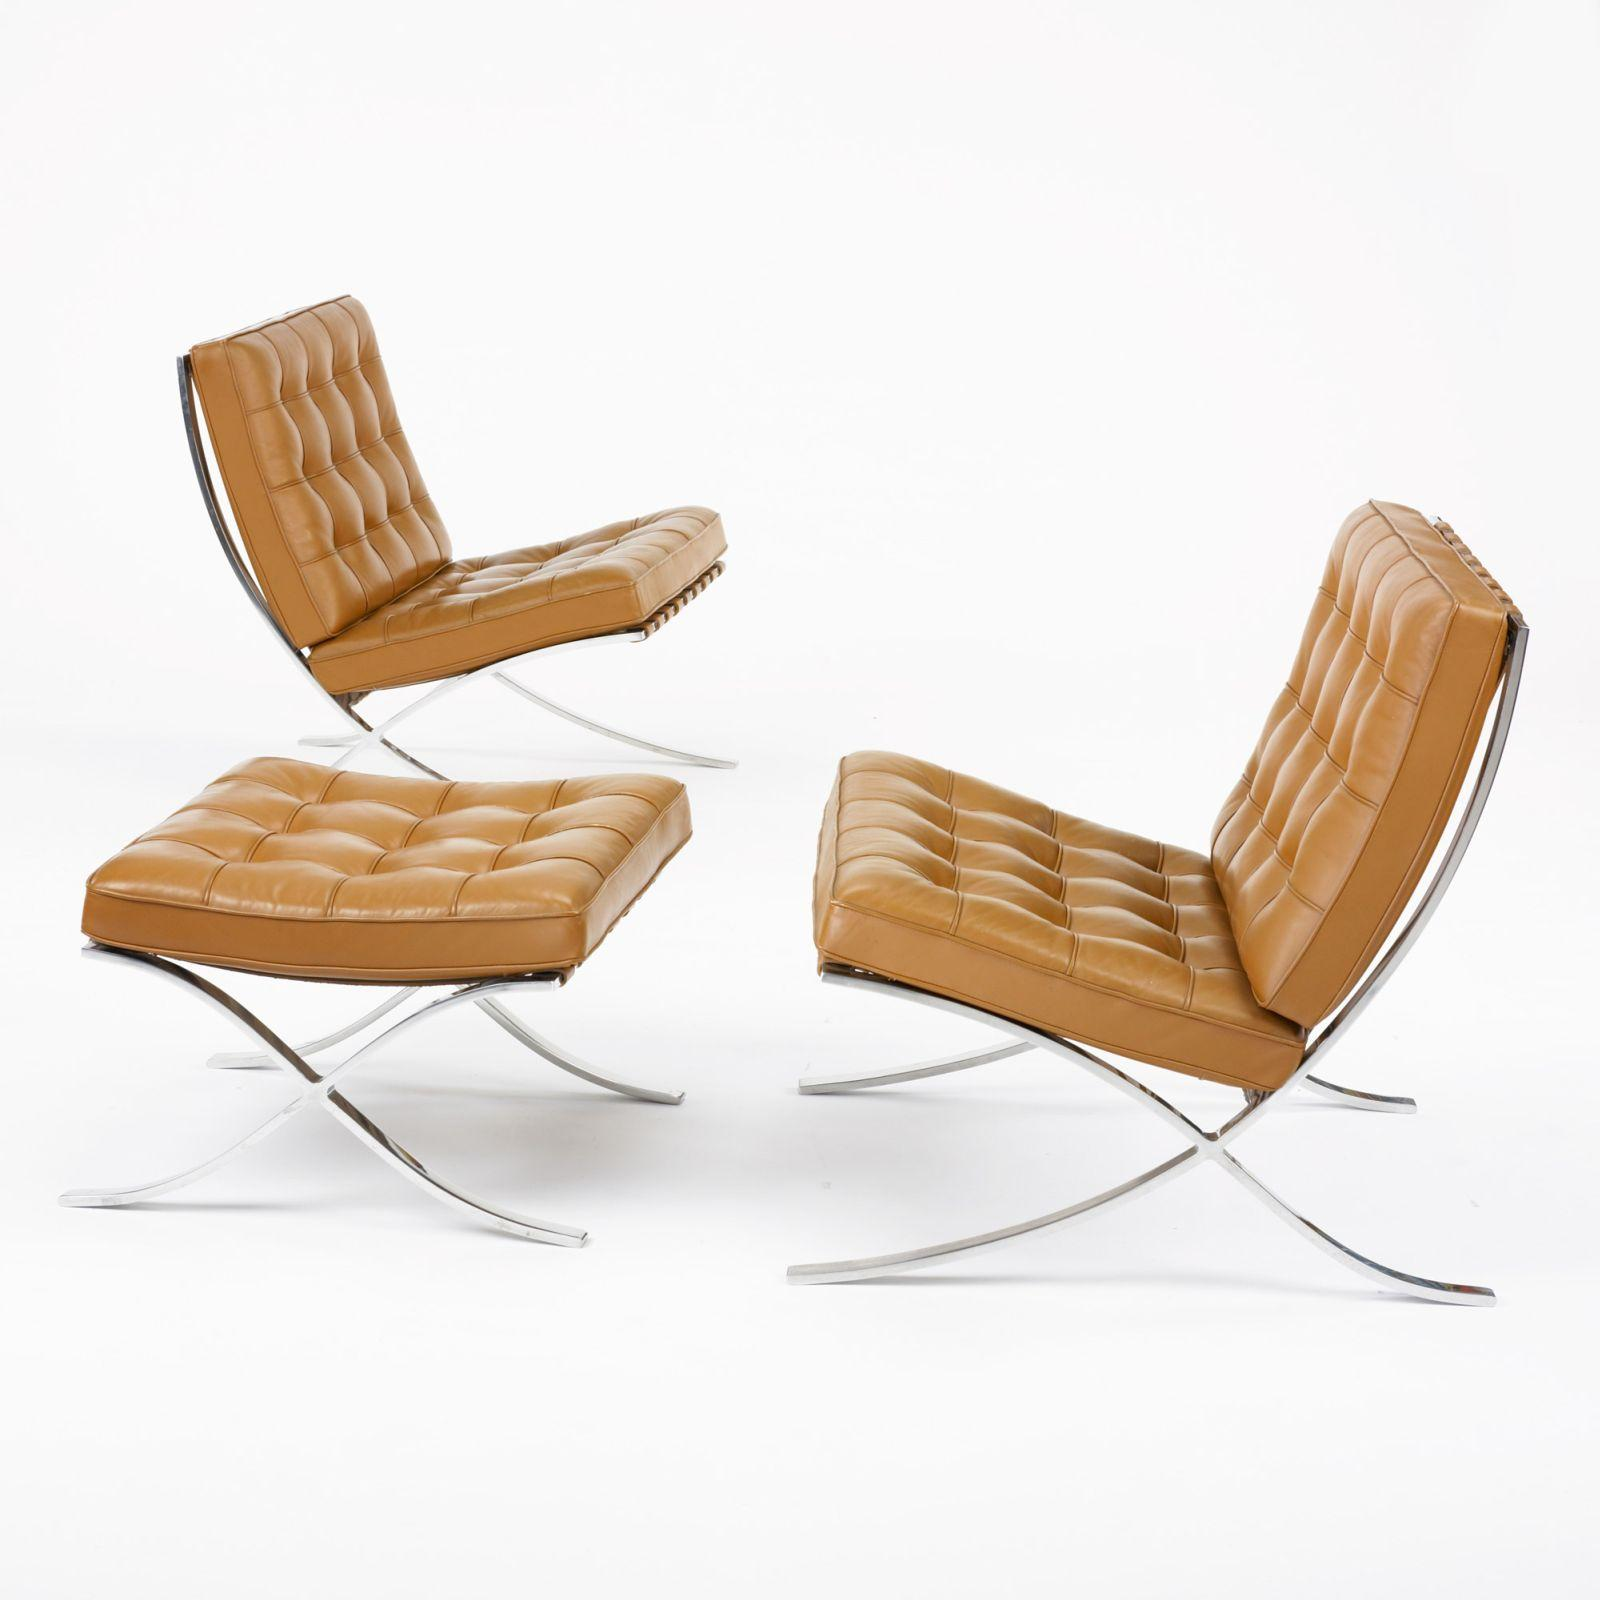 Barcelona Chairs For Sale Ludwig Mies Van Der Rohe Pair Of Barcelona Chairs With Ottoman